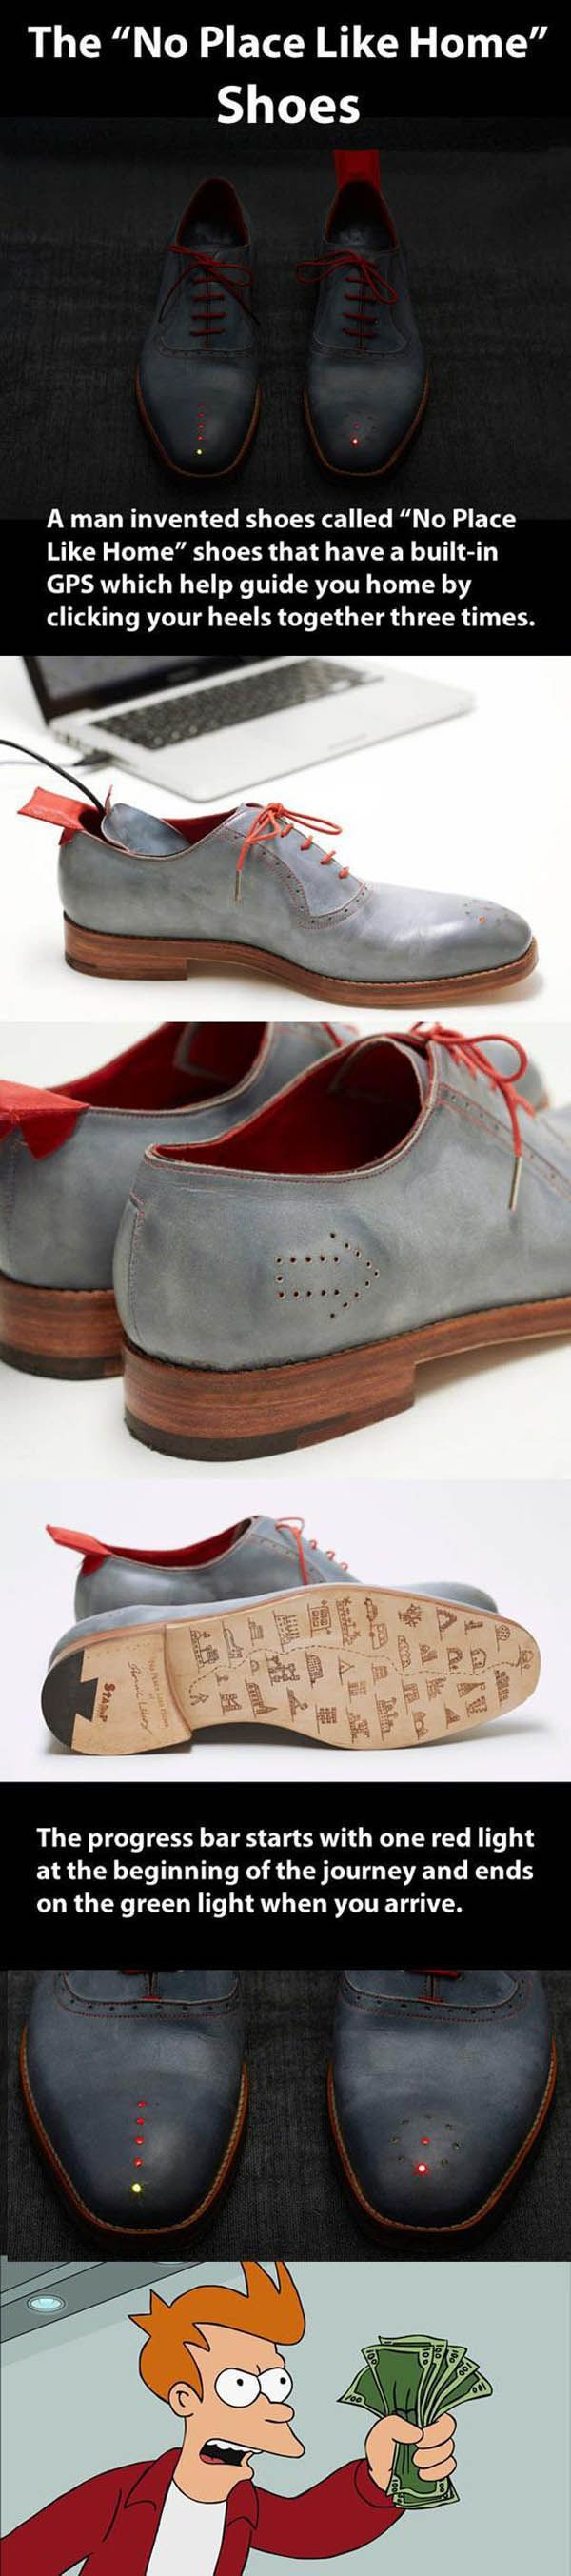 shoes with GPS invention